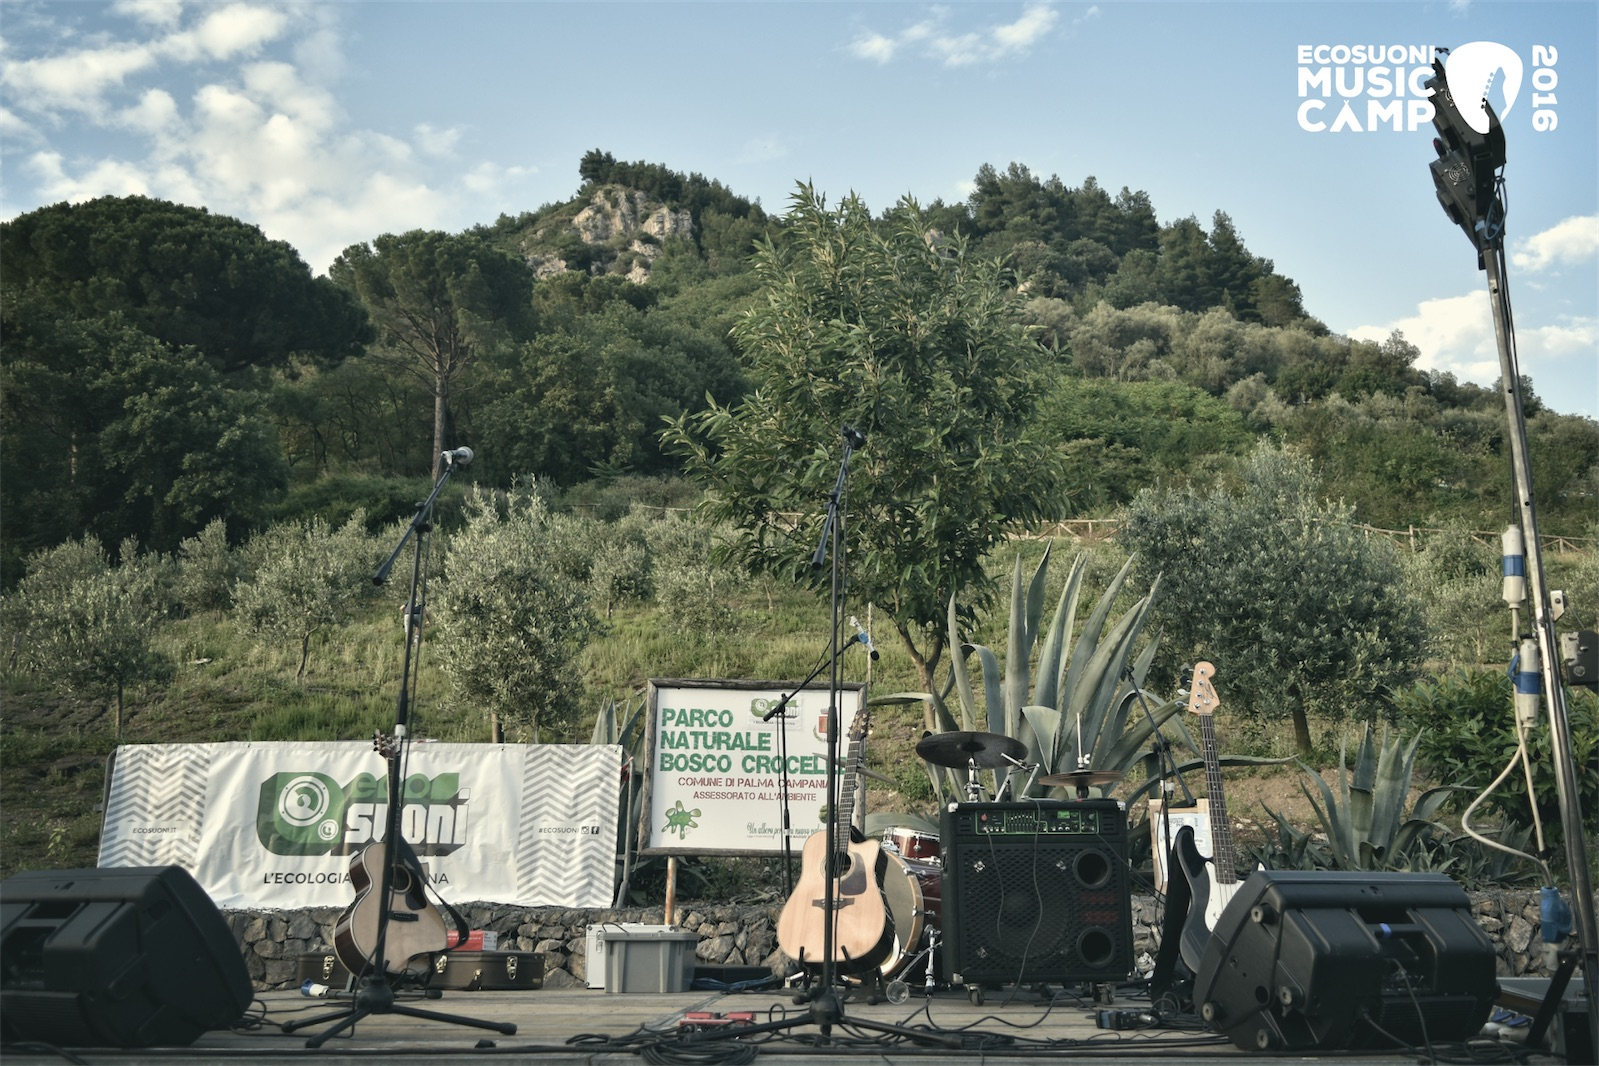 Foto Ecosuoni Music Camp 2016